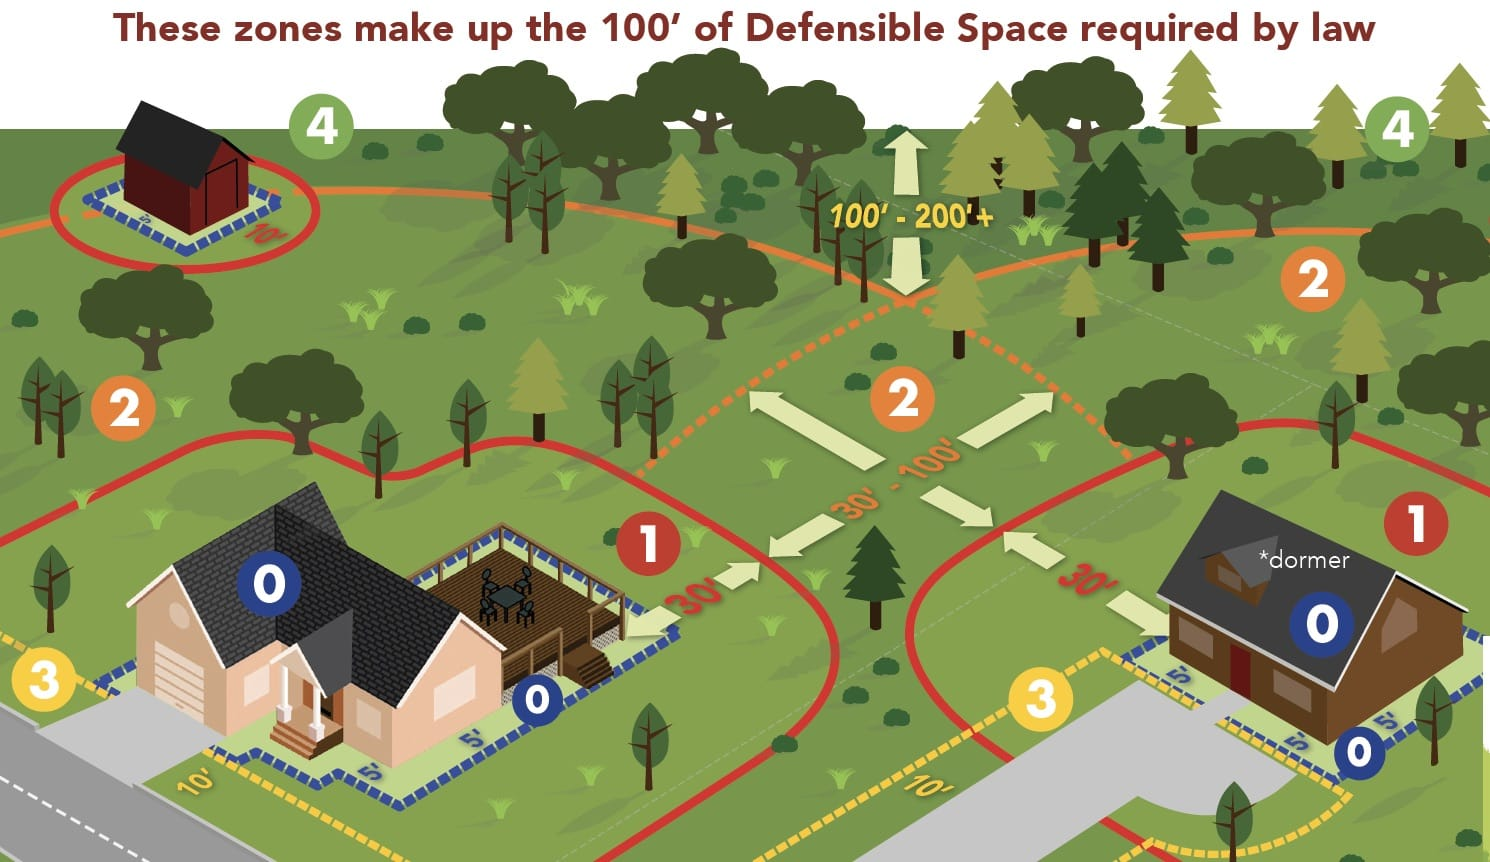 Defensible Space zones 2019